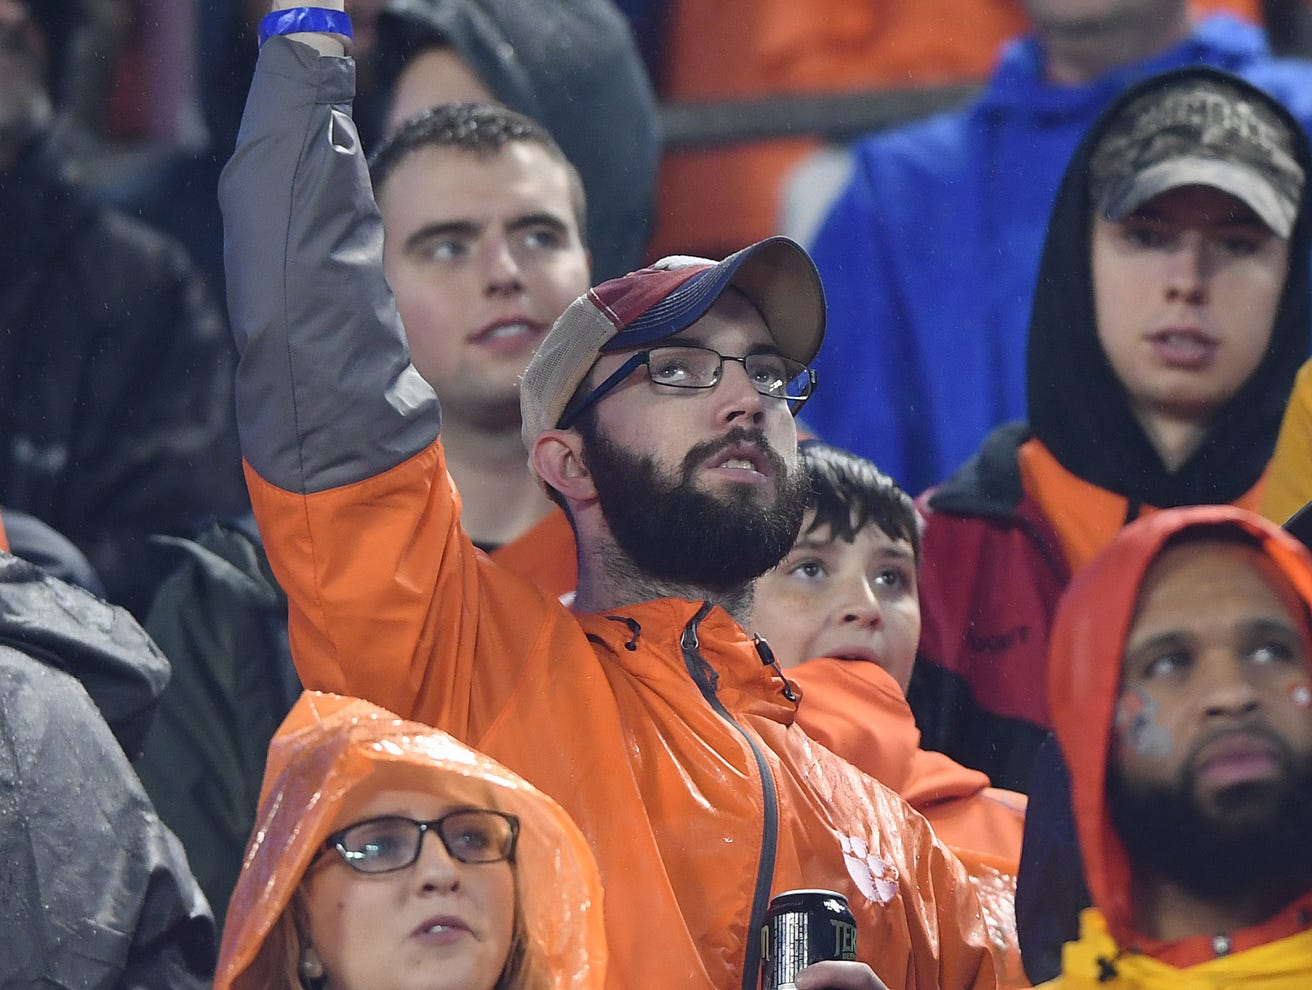 Clemson fans during the 2nd quarter of the Dr. Pepper ACC Championship at Bank of America Stadium in Charlotte, N.C. Saturday, December 1, 2018.